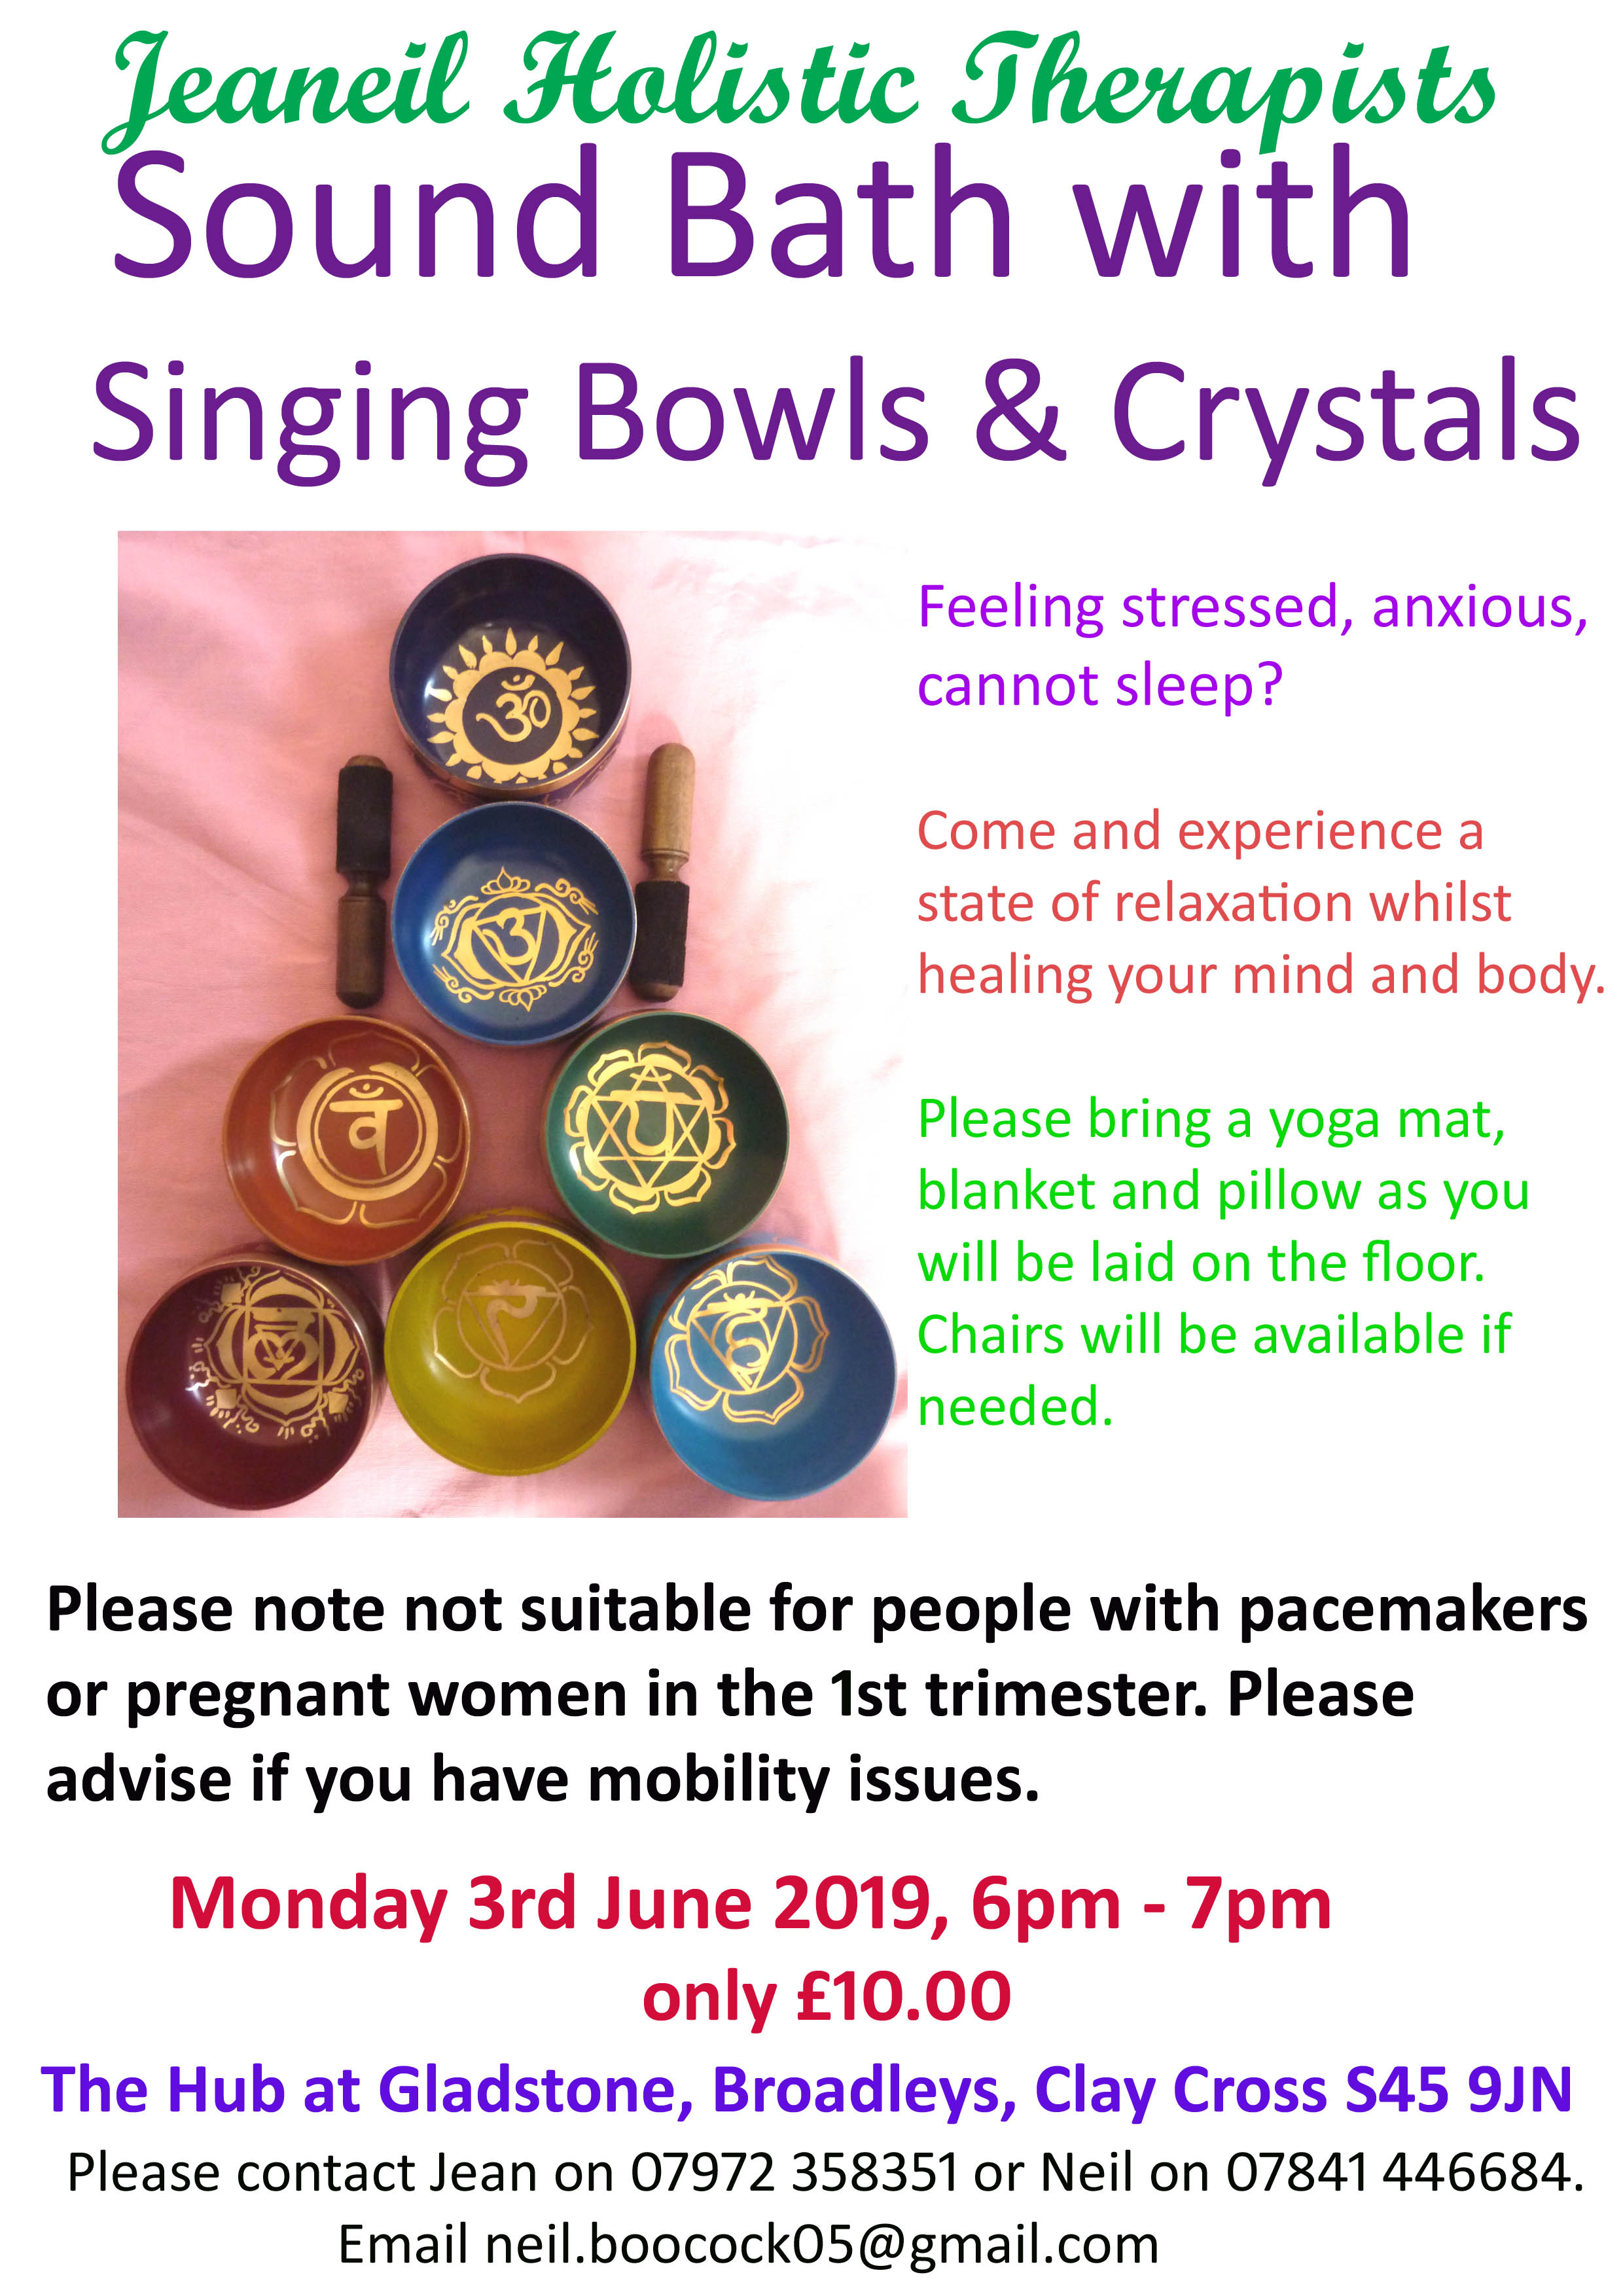 DERBYSHIRE - Sound Bath with Singing Bowls and Crystals